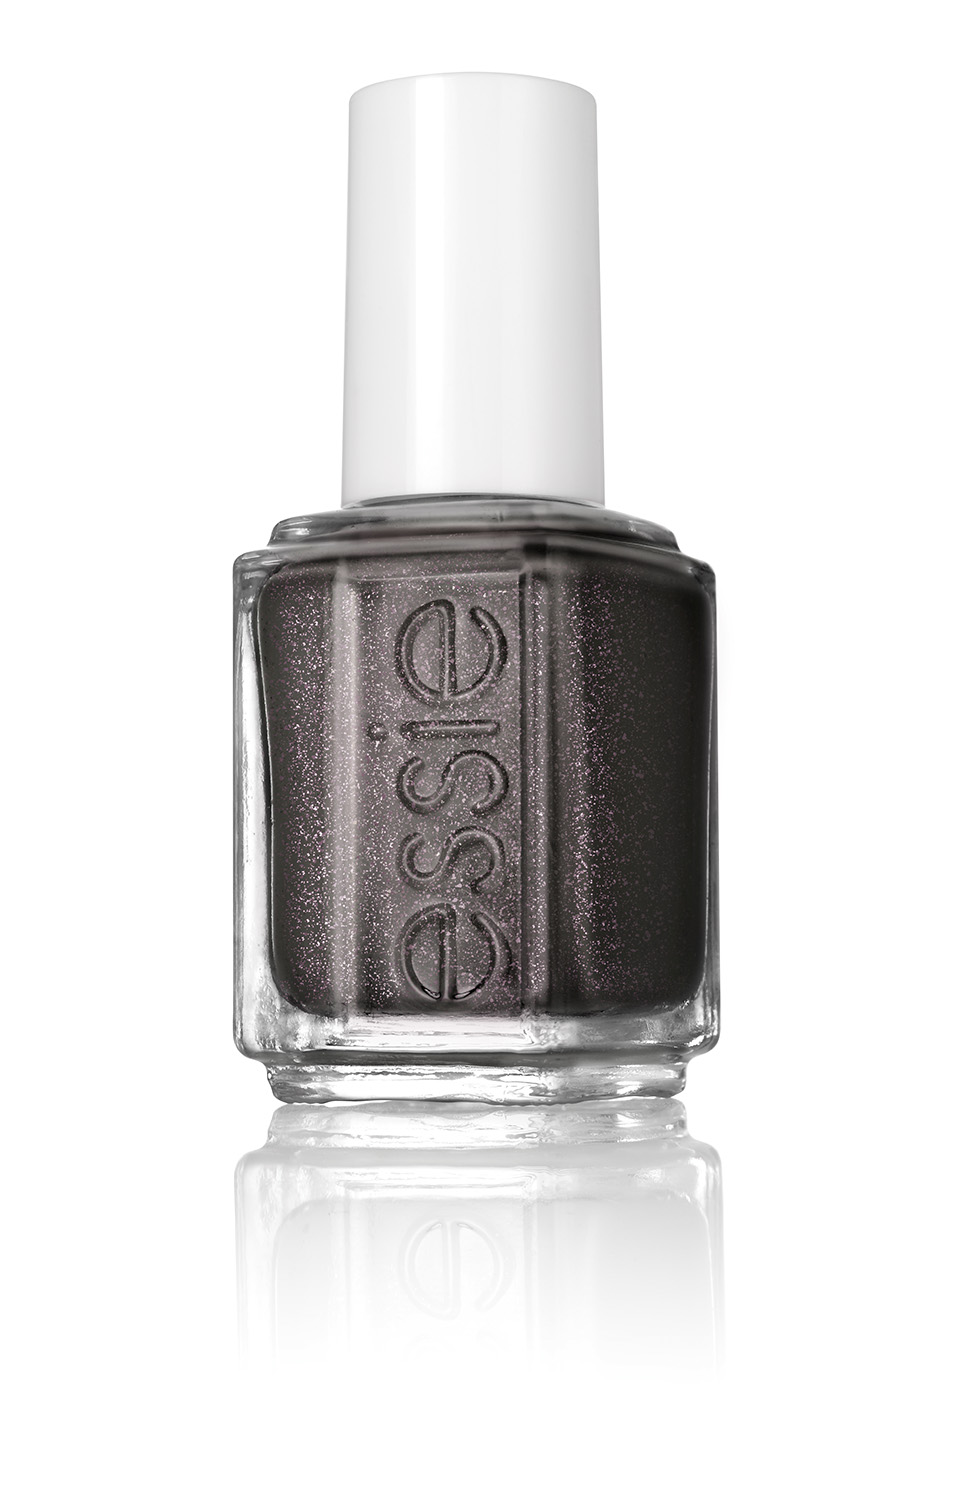 Essie fall 2015 collection